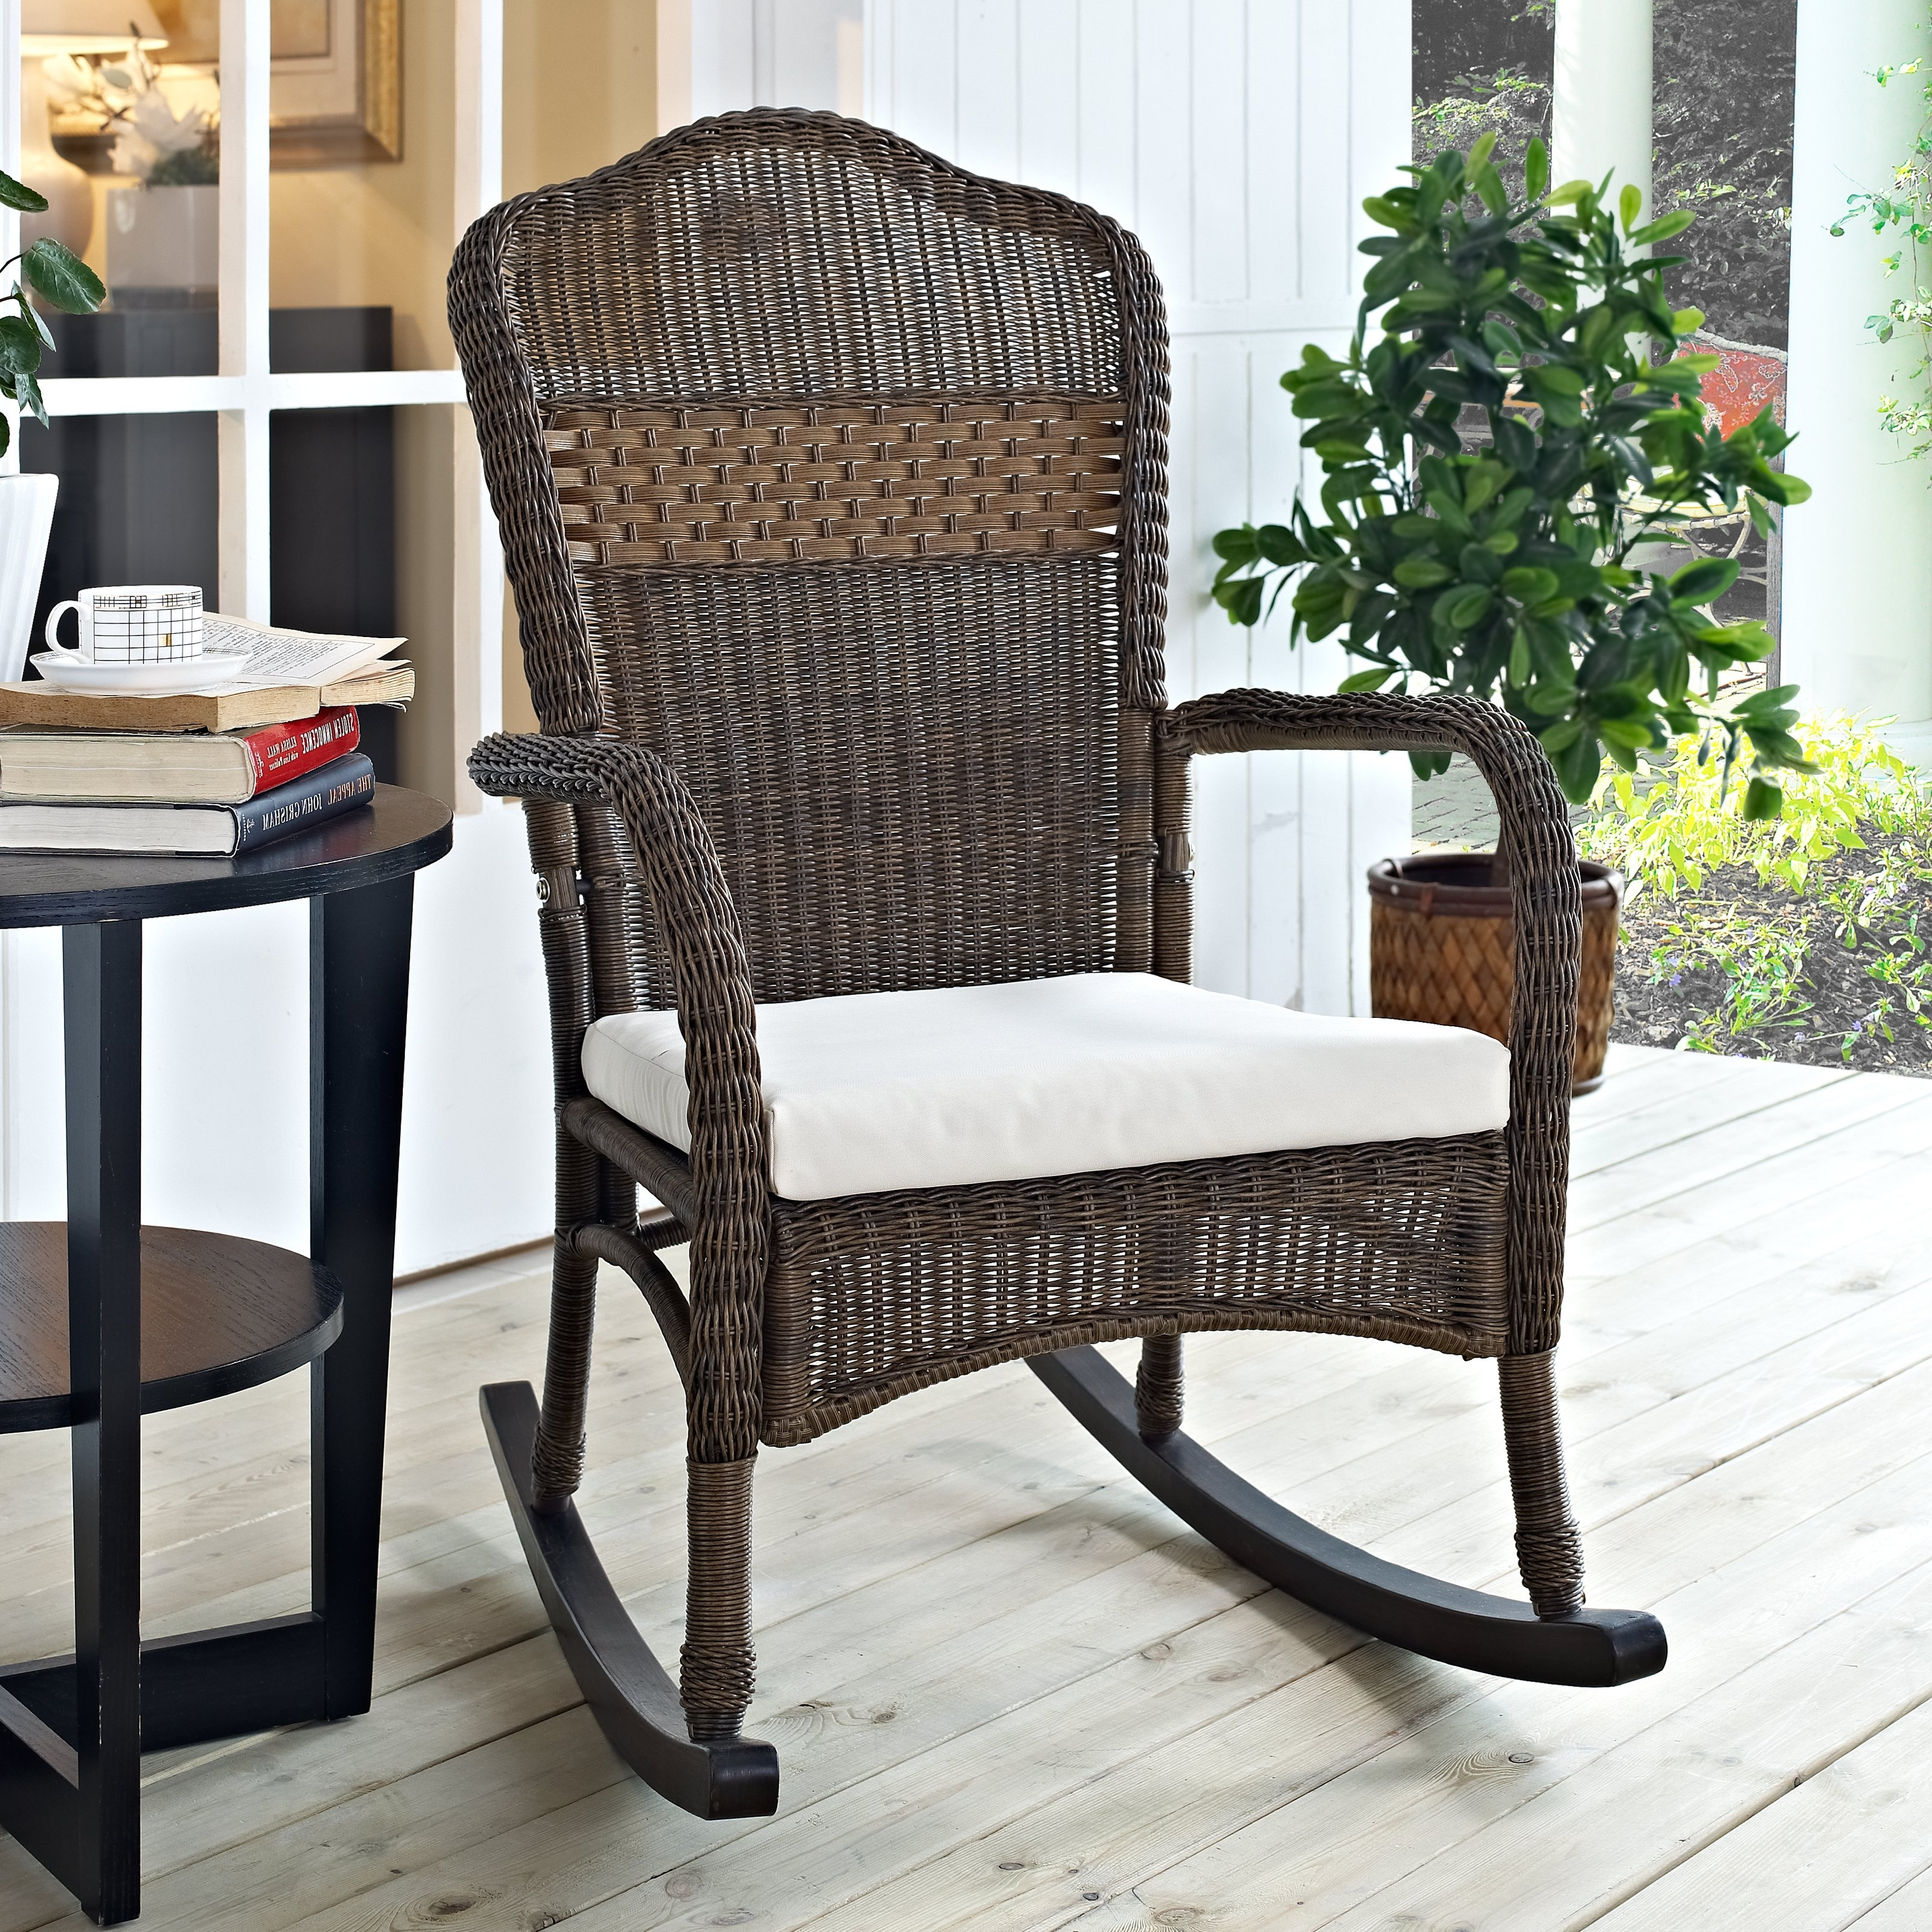 Coral Coast Mocha Resin Wicker Rocking Chair With Beige Cushion In Trendy Outdoor Rocking Chairs With Cushions (View 3 of 20)